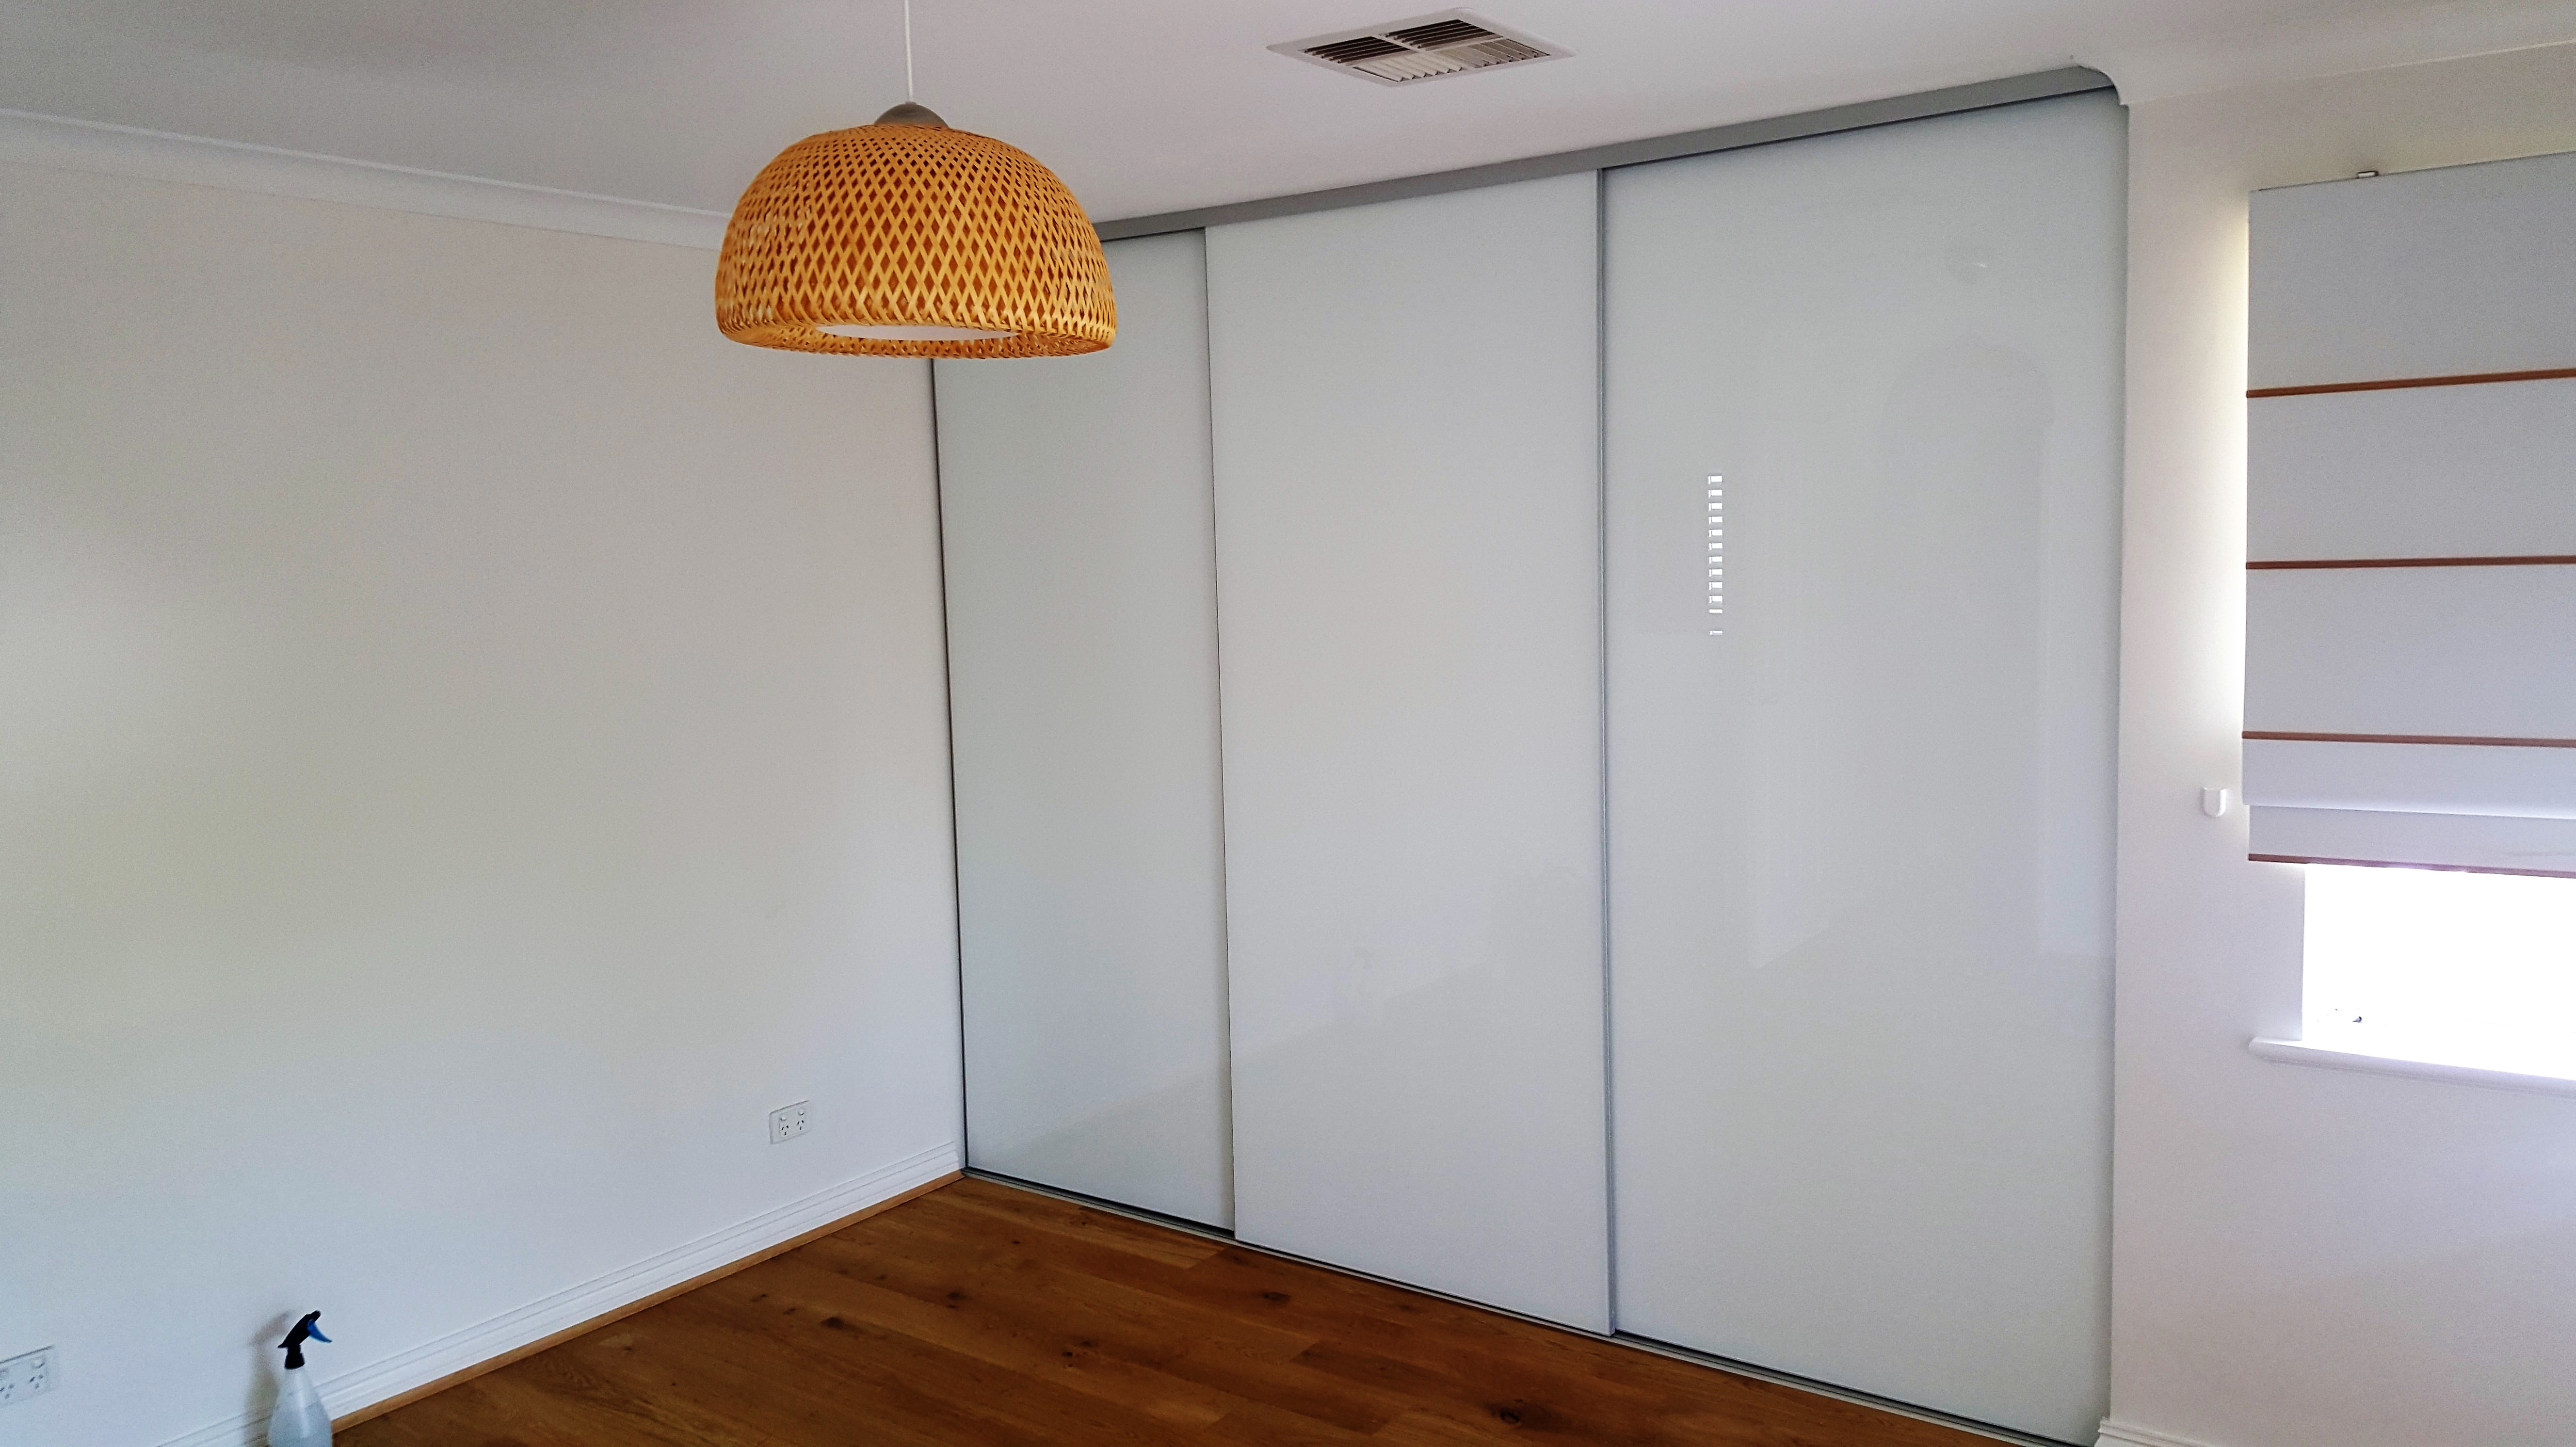 Three Door Frameless Sliding Wardrobe Doors with White Glass